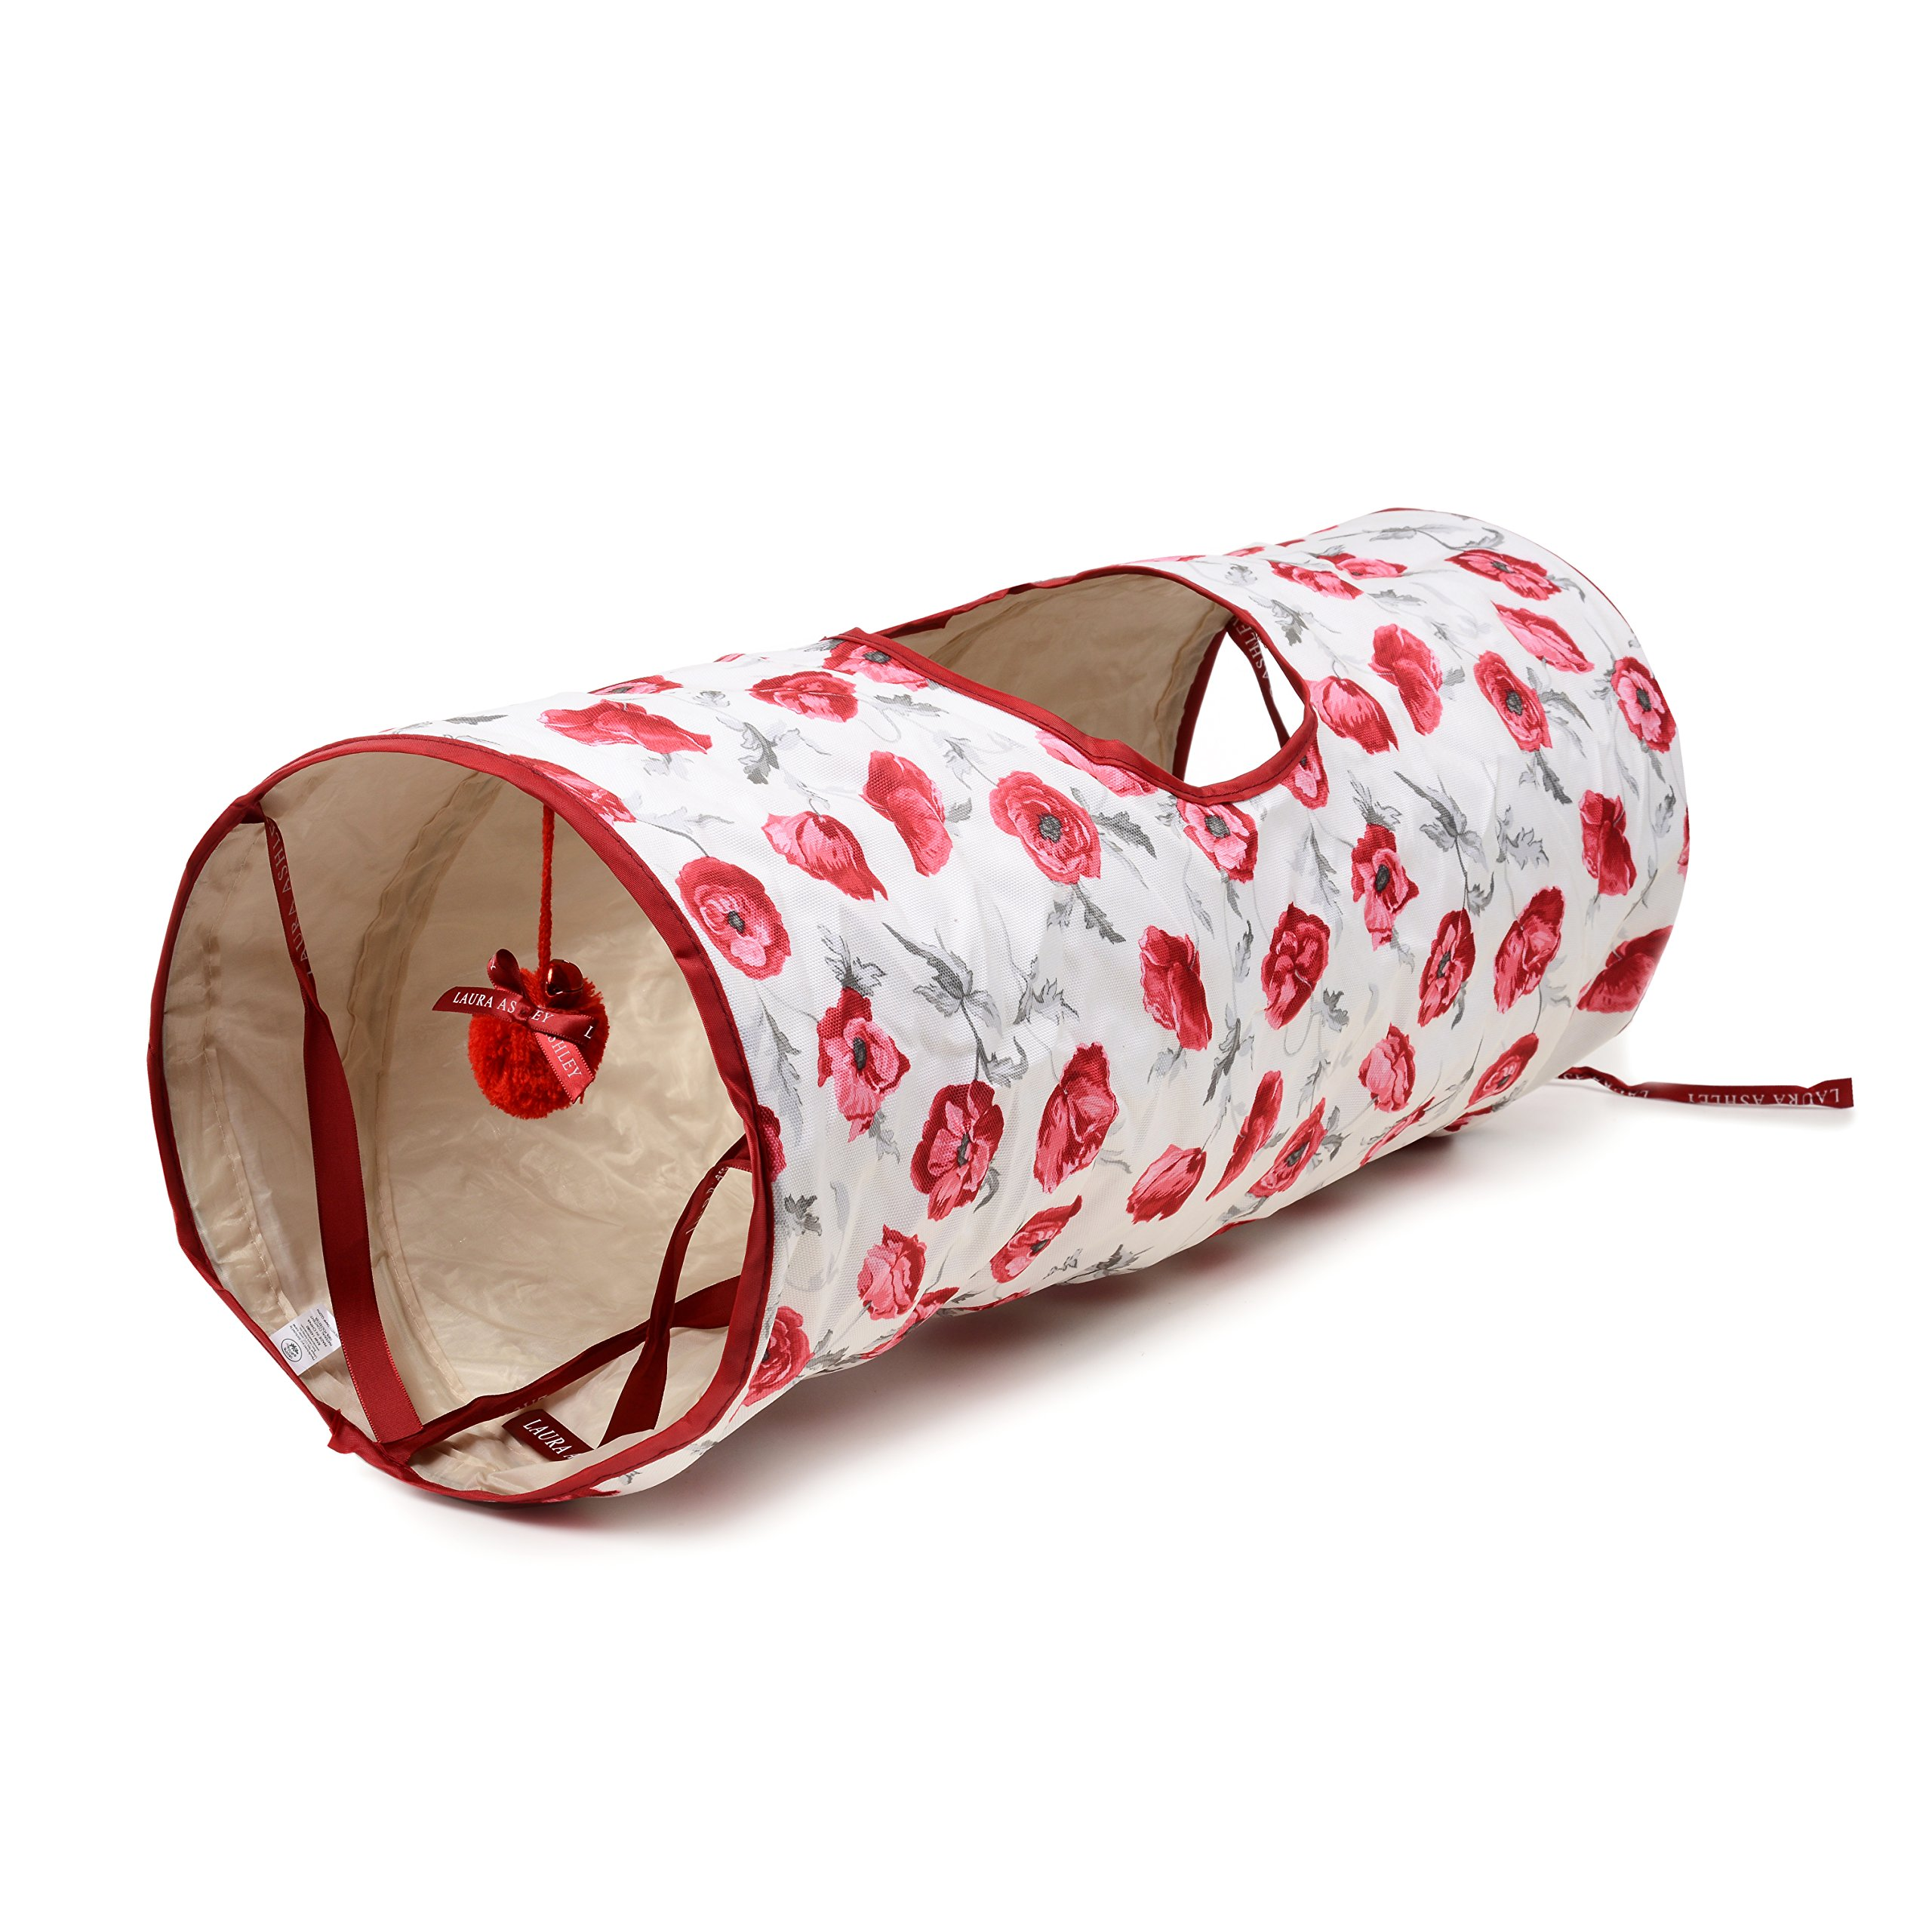 Laura Ashley Crinkle Pet Cat Floral Tunnel with Bungee Toy and Peephole